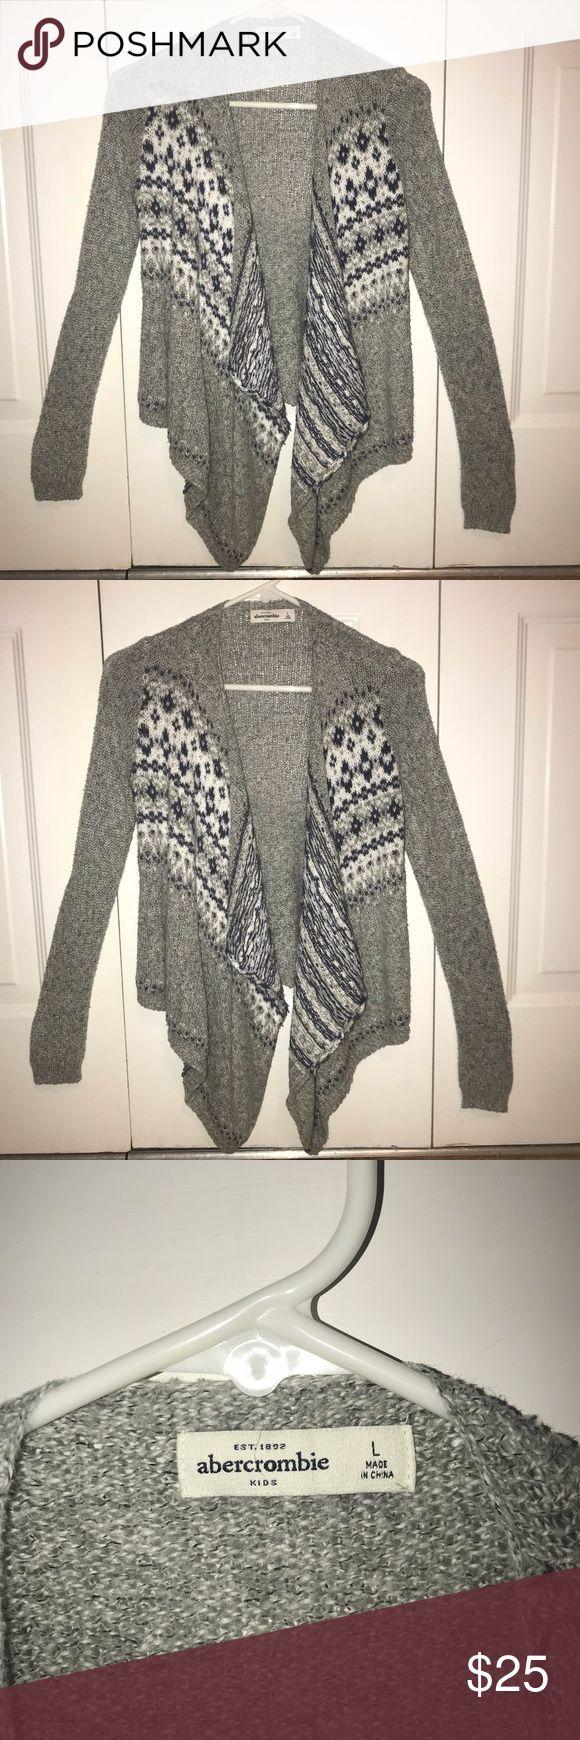 Abercrombie Kids Girls Grey Cardigan Light cardigan purchased from Abercrombie Kids. Has a little snag up near collar (pictured). Worn more than a few times! SIZE 13/14 (pictured) abercrombie kids Shirts & Tops Sweaters